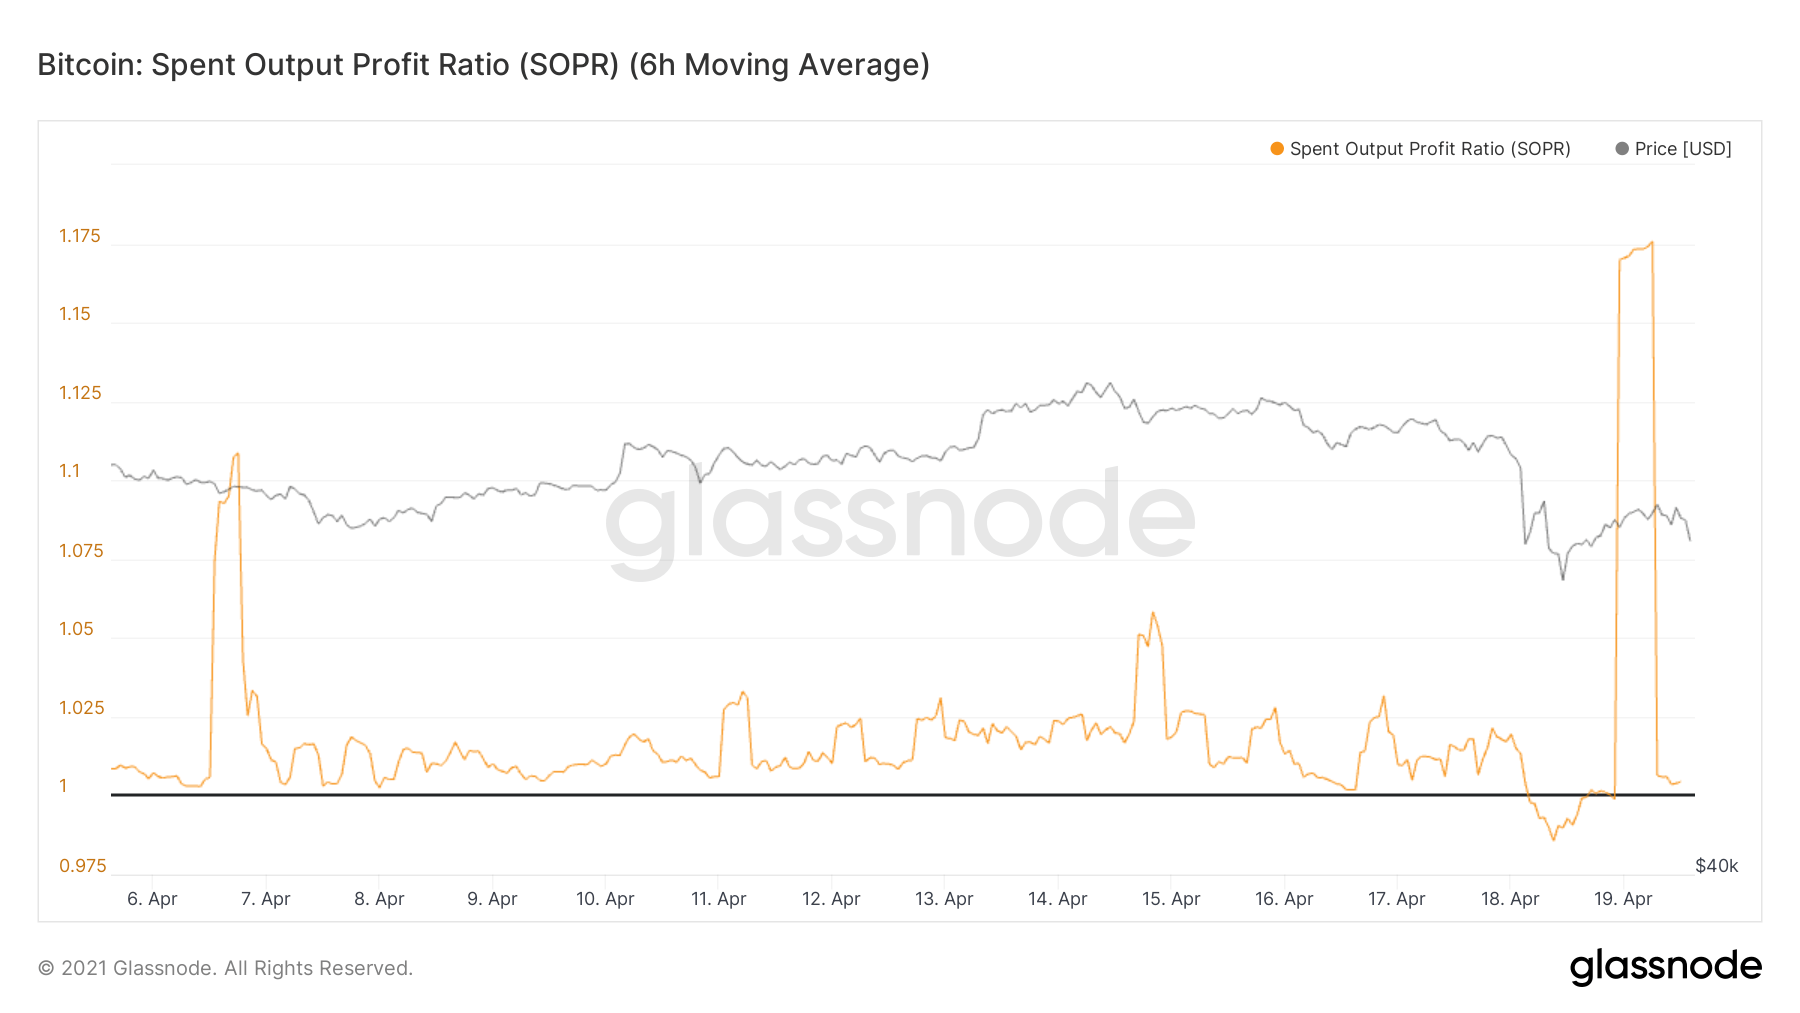 Bitcoin Spent Output Profit Ratio by Glassnode